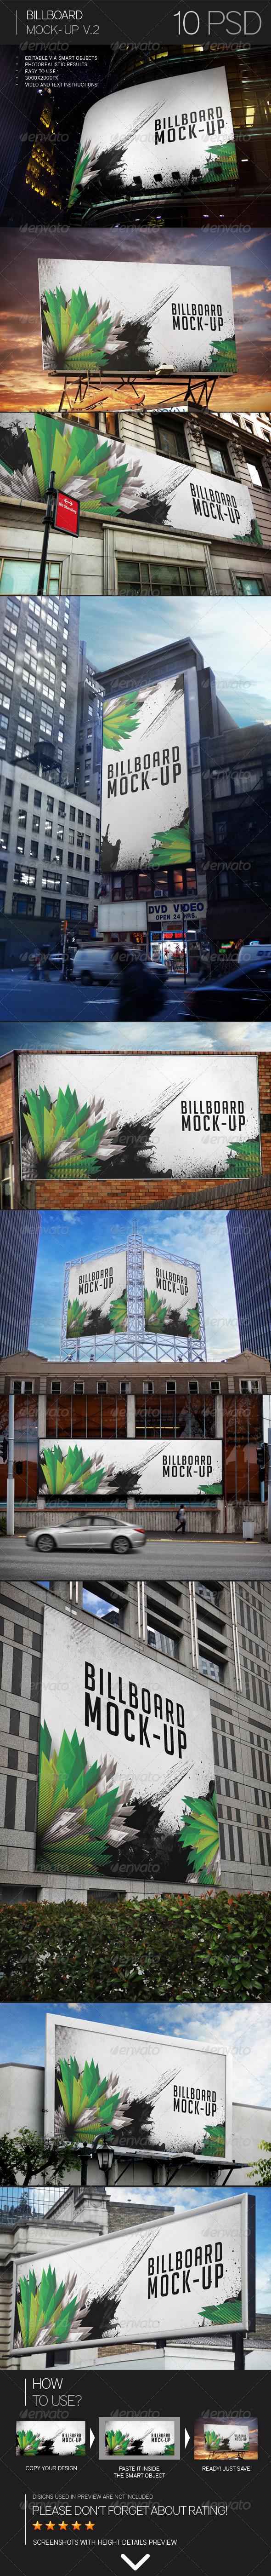 Billboard Mock-Up Vol.2 - Miscellaneous Print